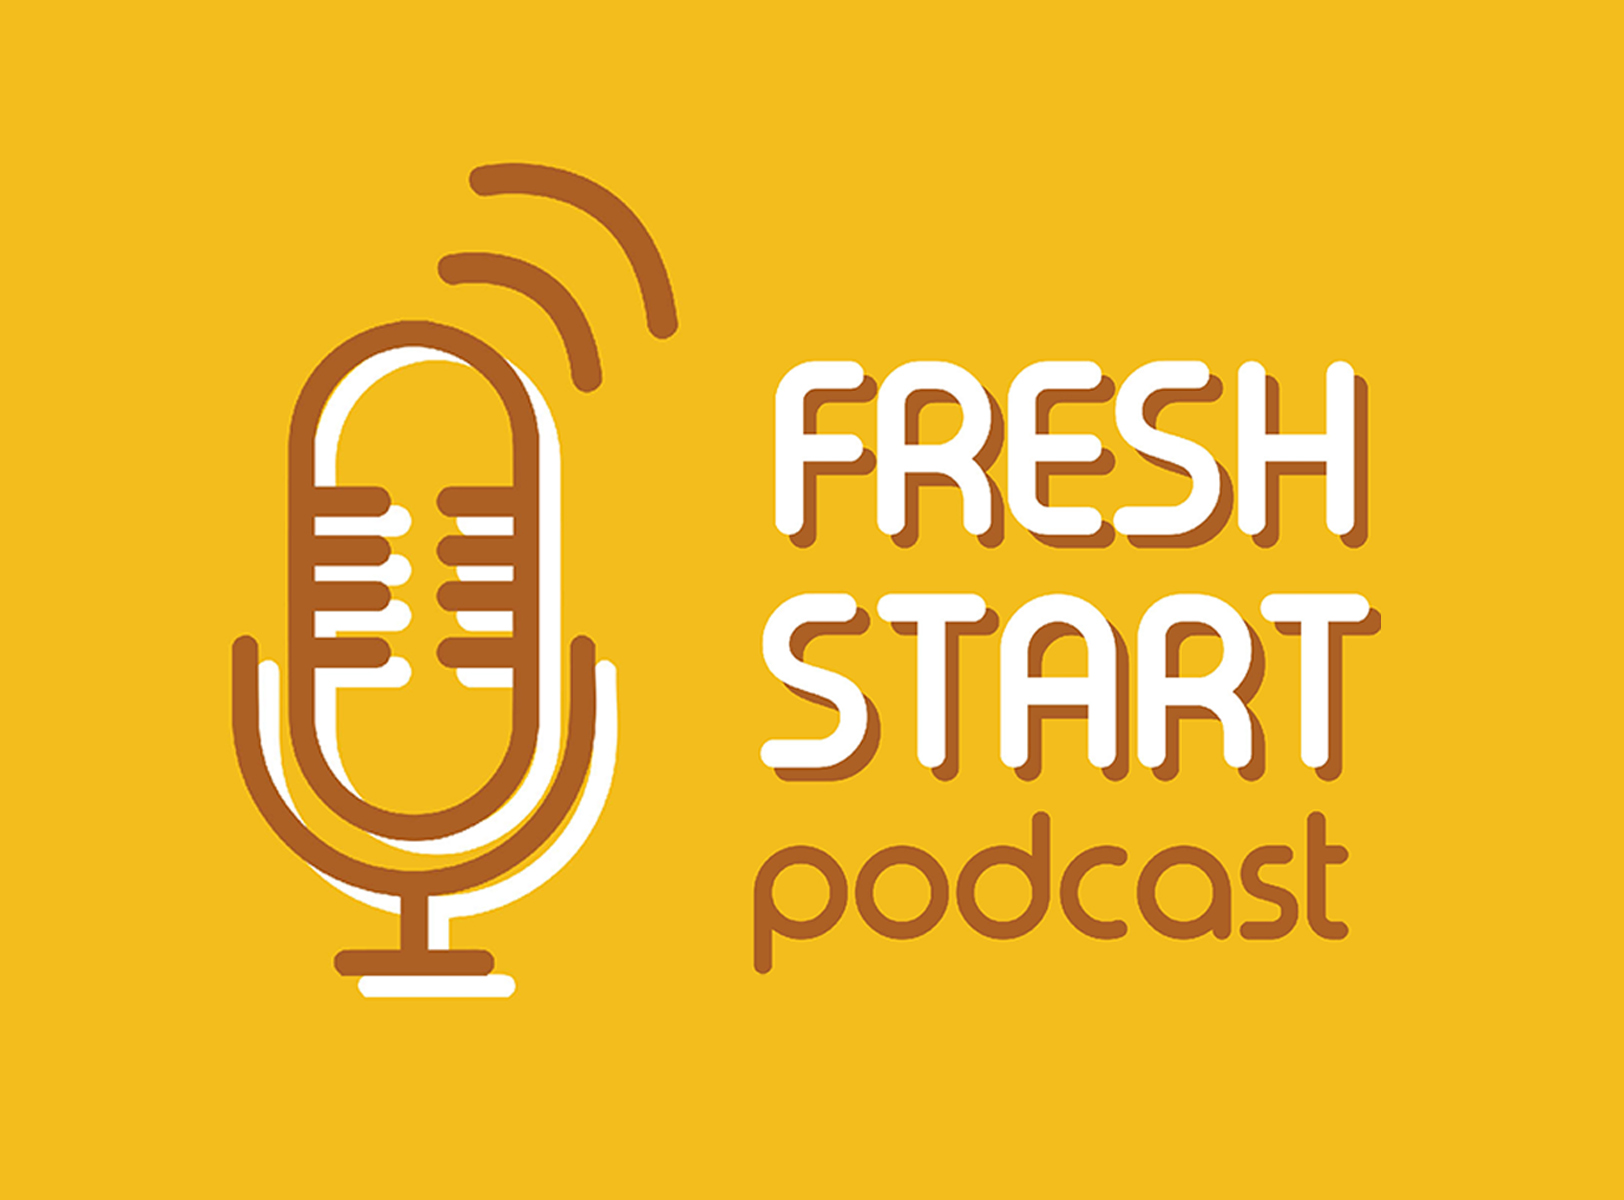 Fresh Start: Podcast News (6/3/2019 Mon.)